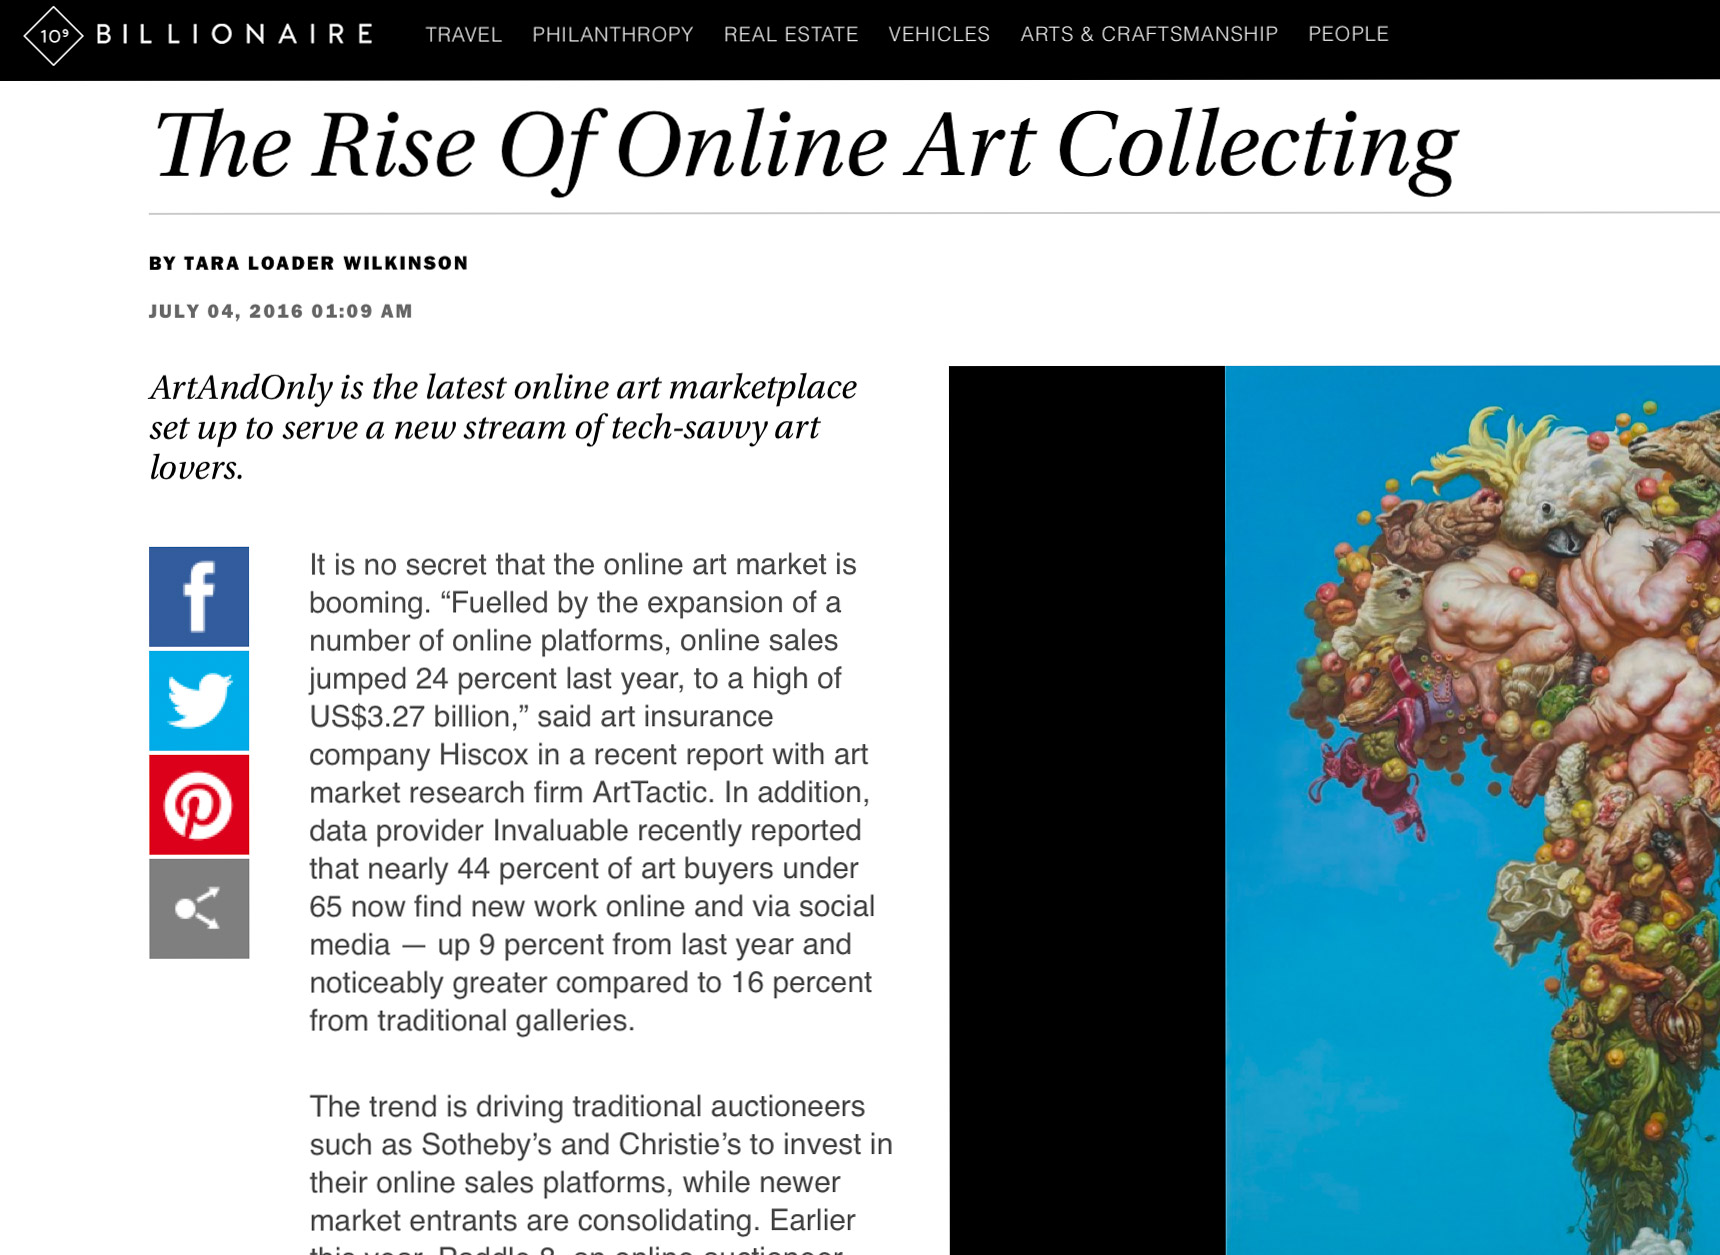 BILLIONAIRE.COM about the Rise of Online Art Collecting